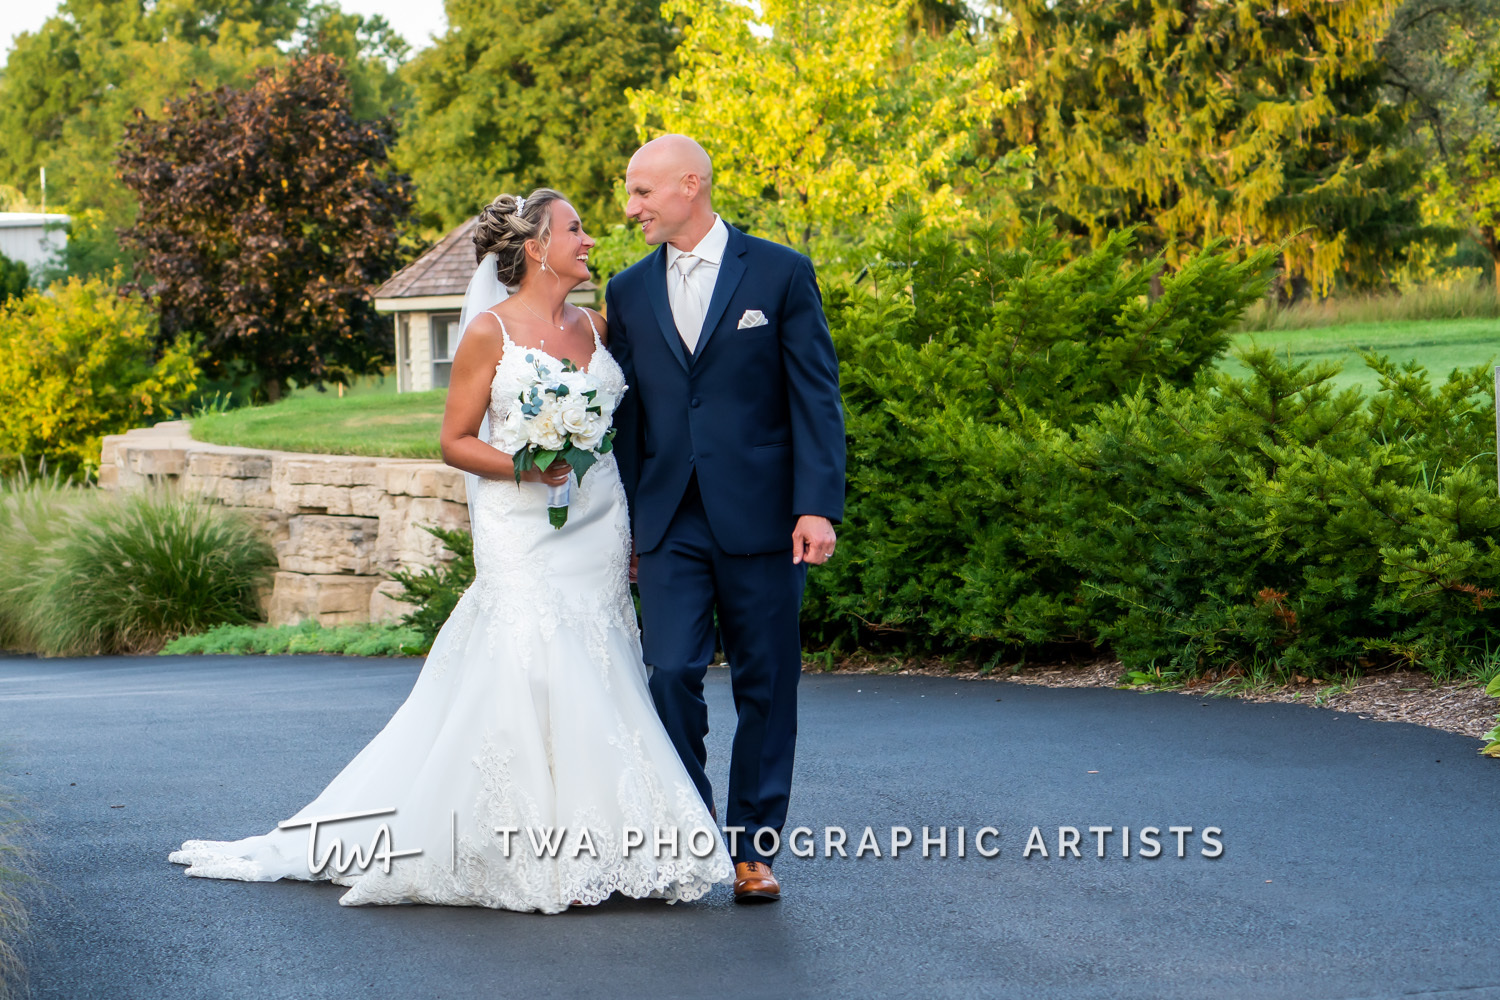 Chicago-Wedding-Photographer-TWA-Photographic-Artists-Reserve-22_Dufort_Gorski_NC-0548